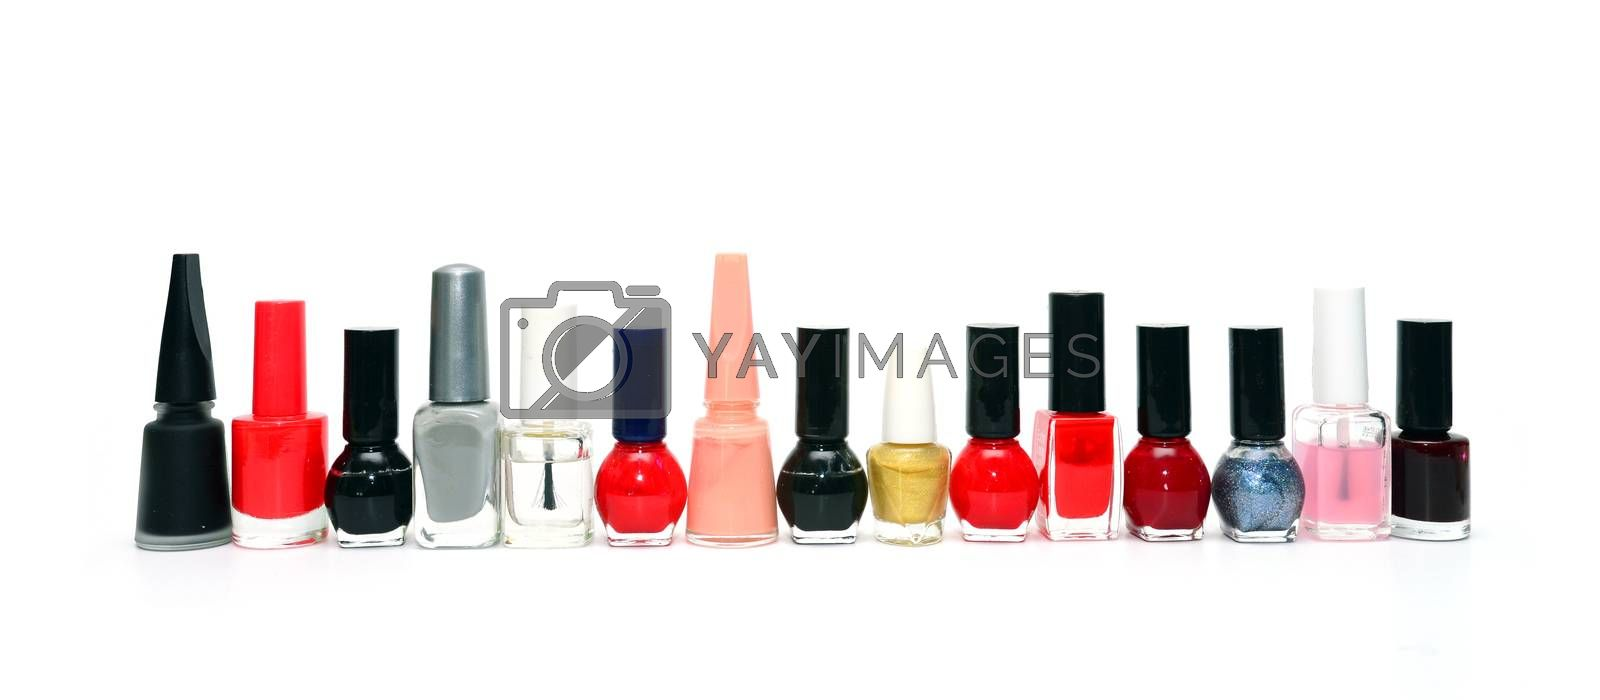 nail polish bottles in a row over white background